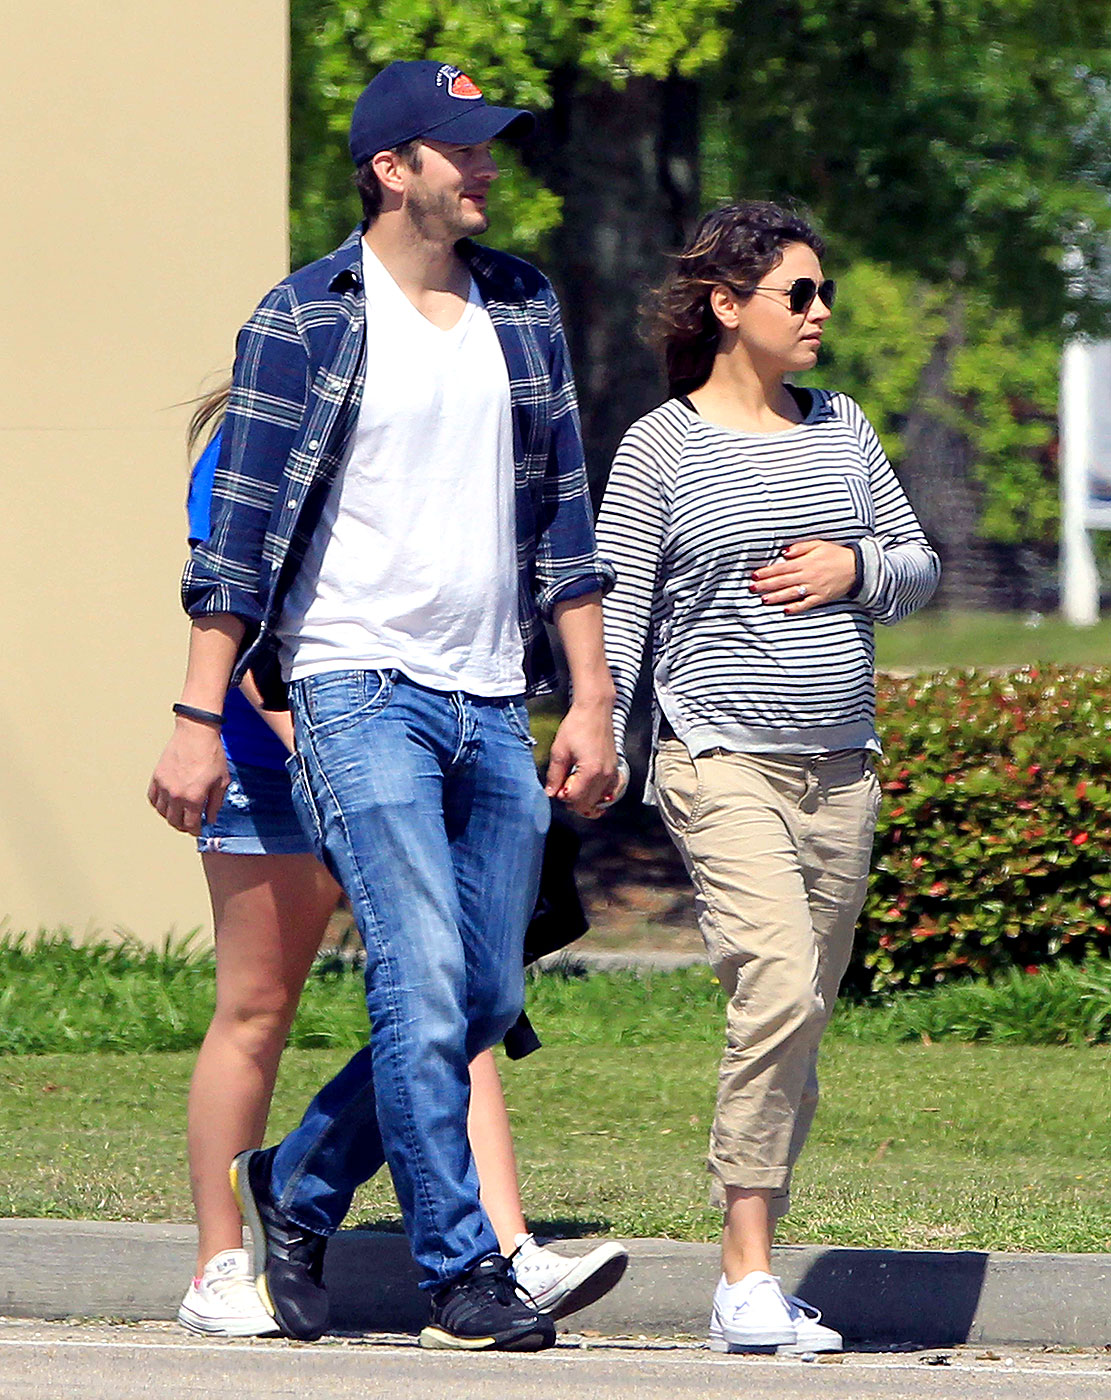 mila kunis discusses pregnancy says she will have natural